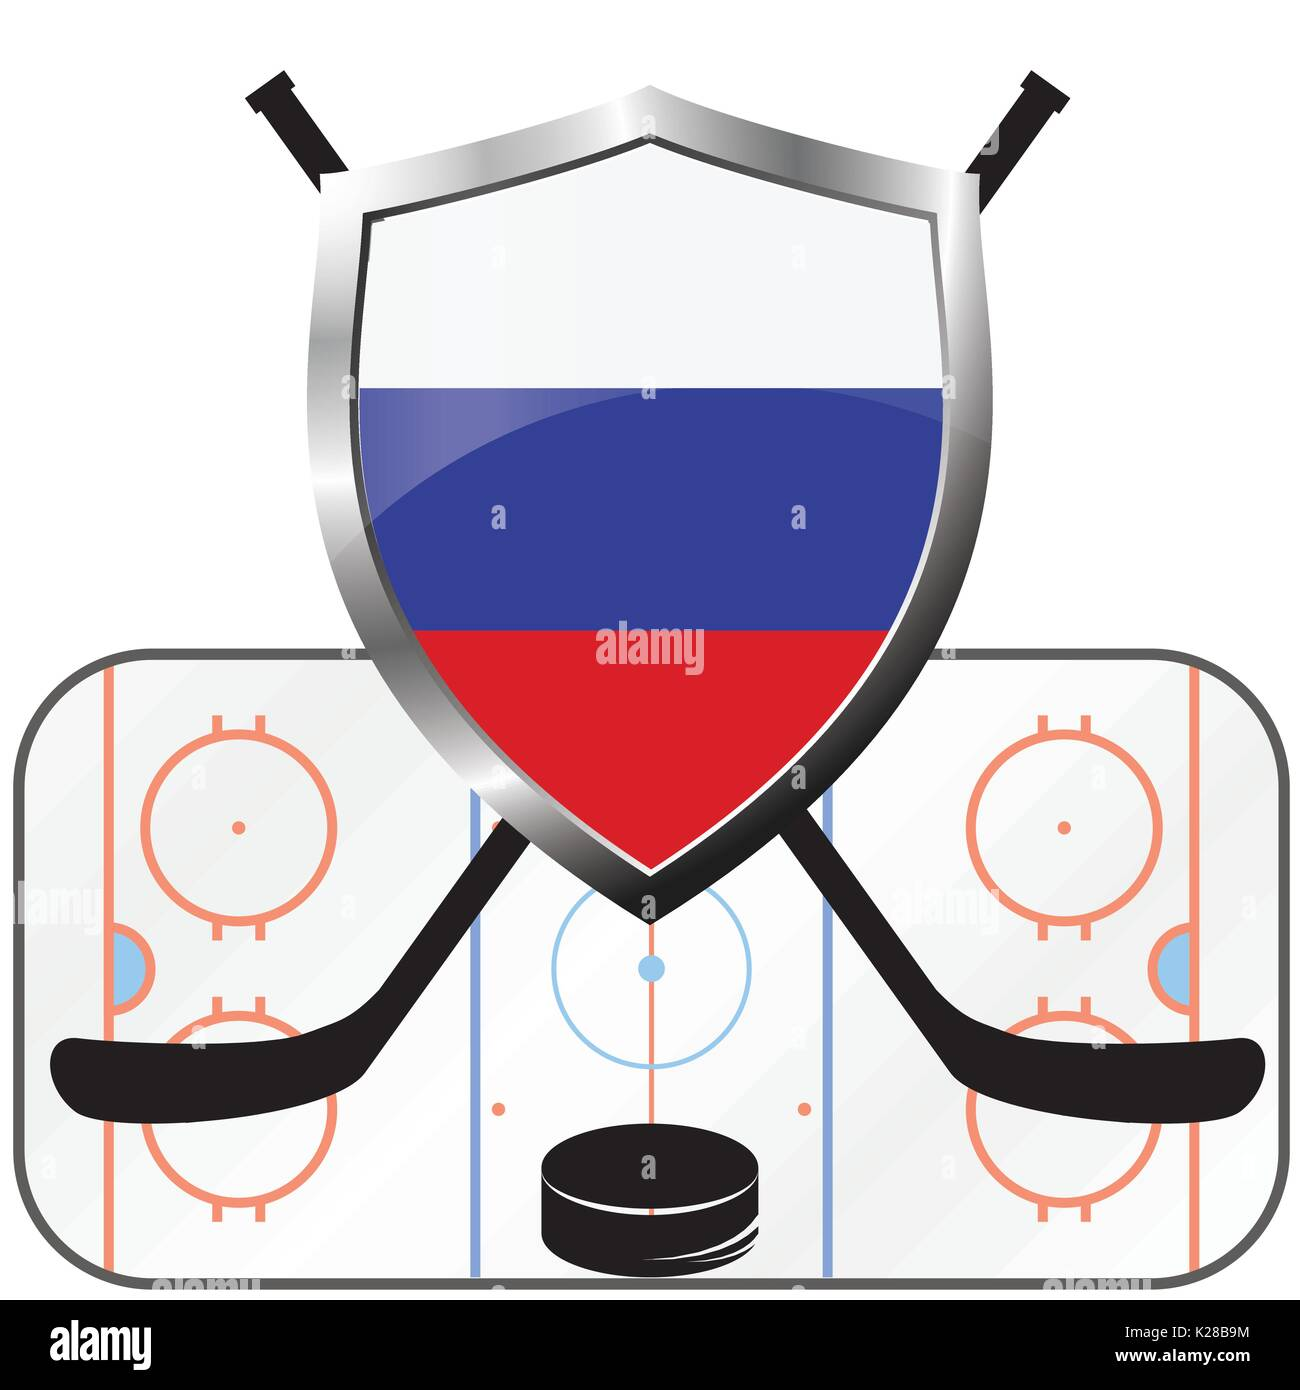 hockey logo- canada vs russia, vector - Stock Vector